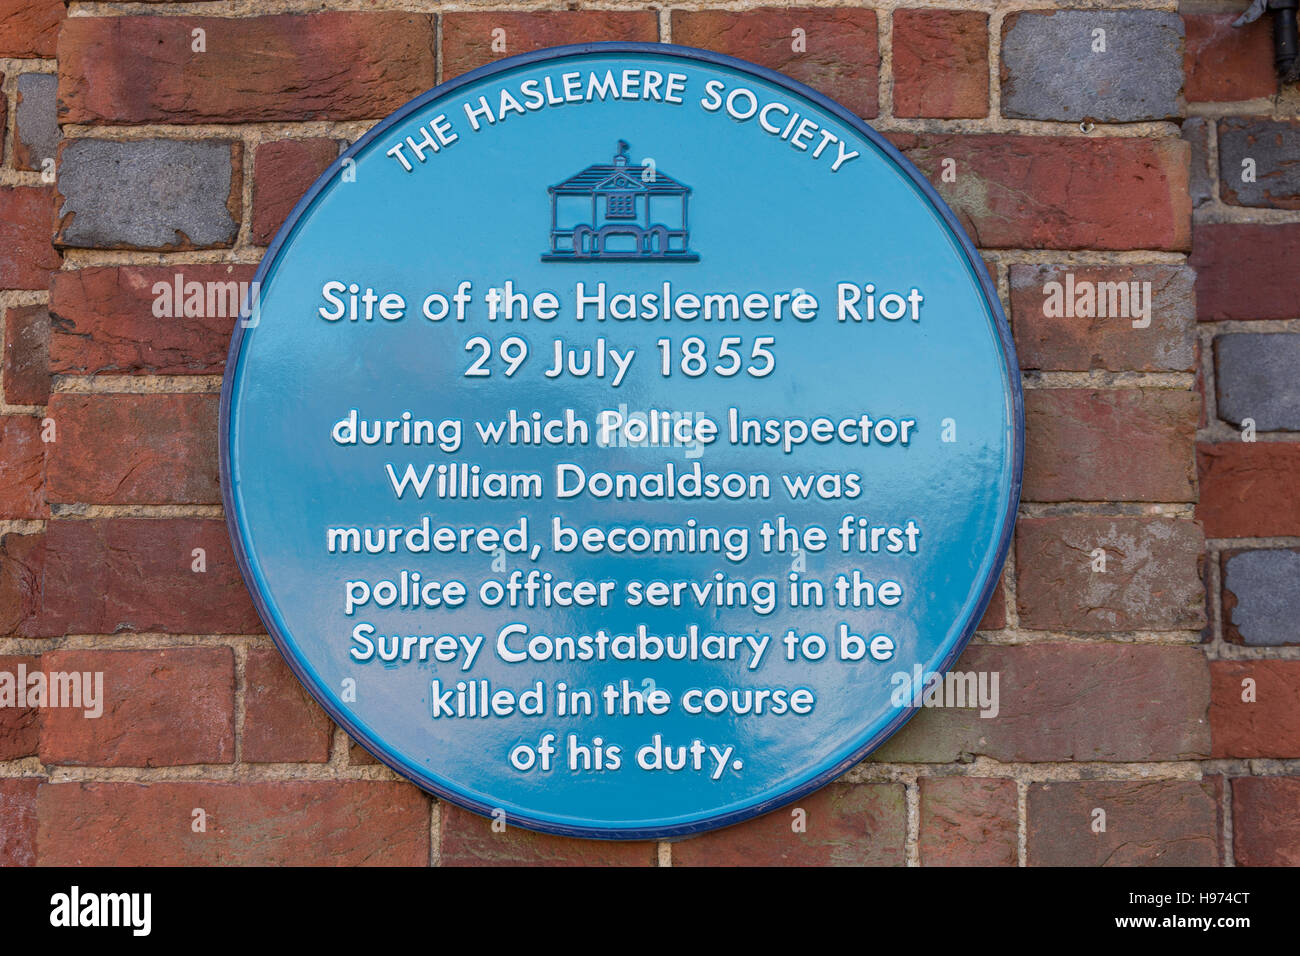 Blue plaque on site of the 1855 Haslemere Riot, High Street, Haslemere, Surrey, England, United Kingdom - Stock Image